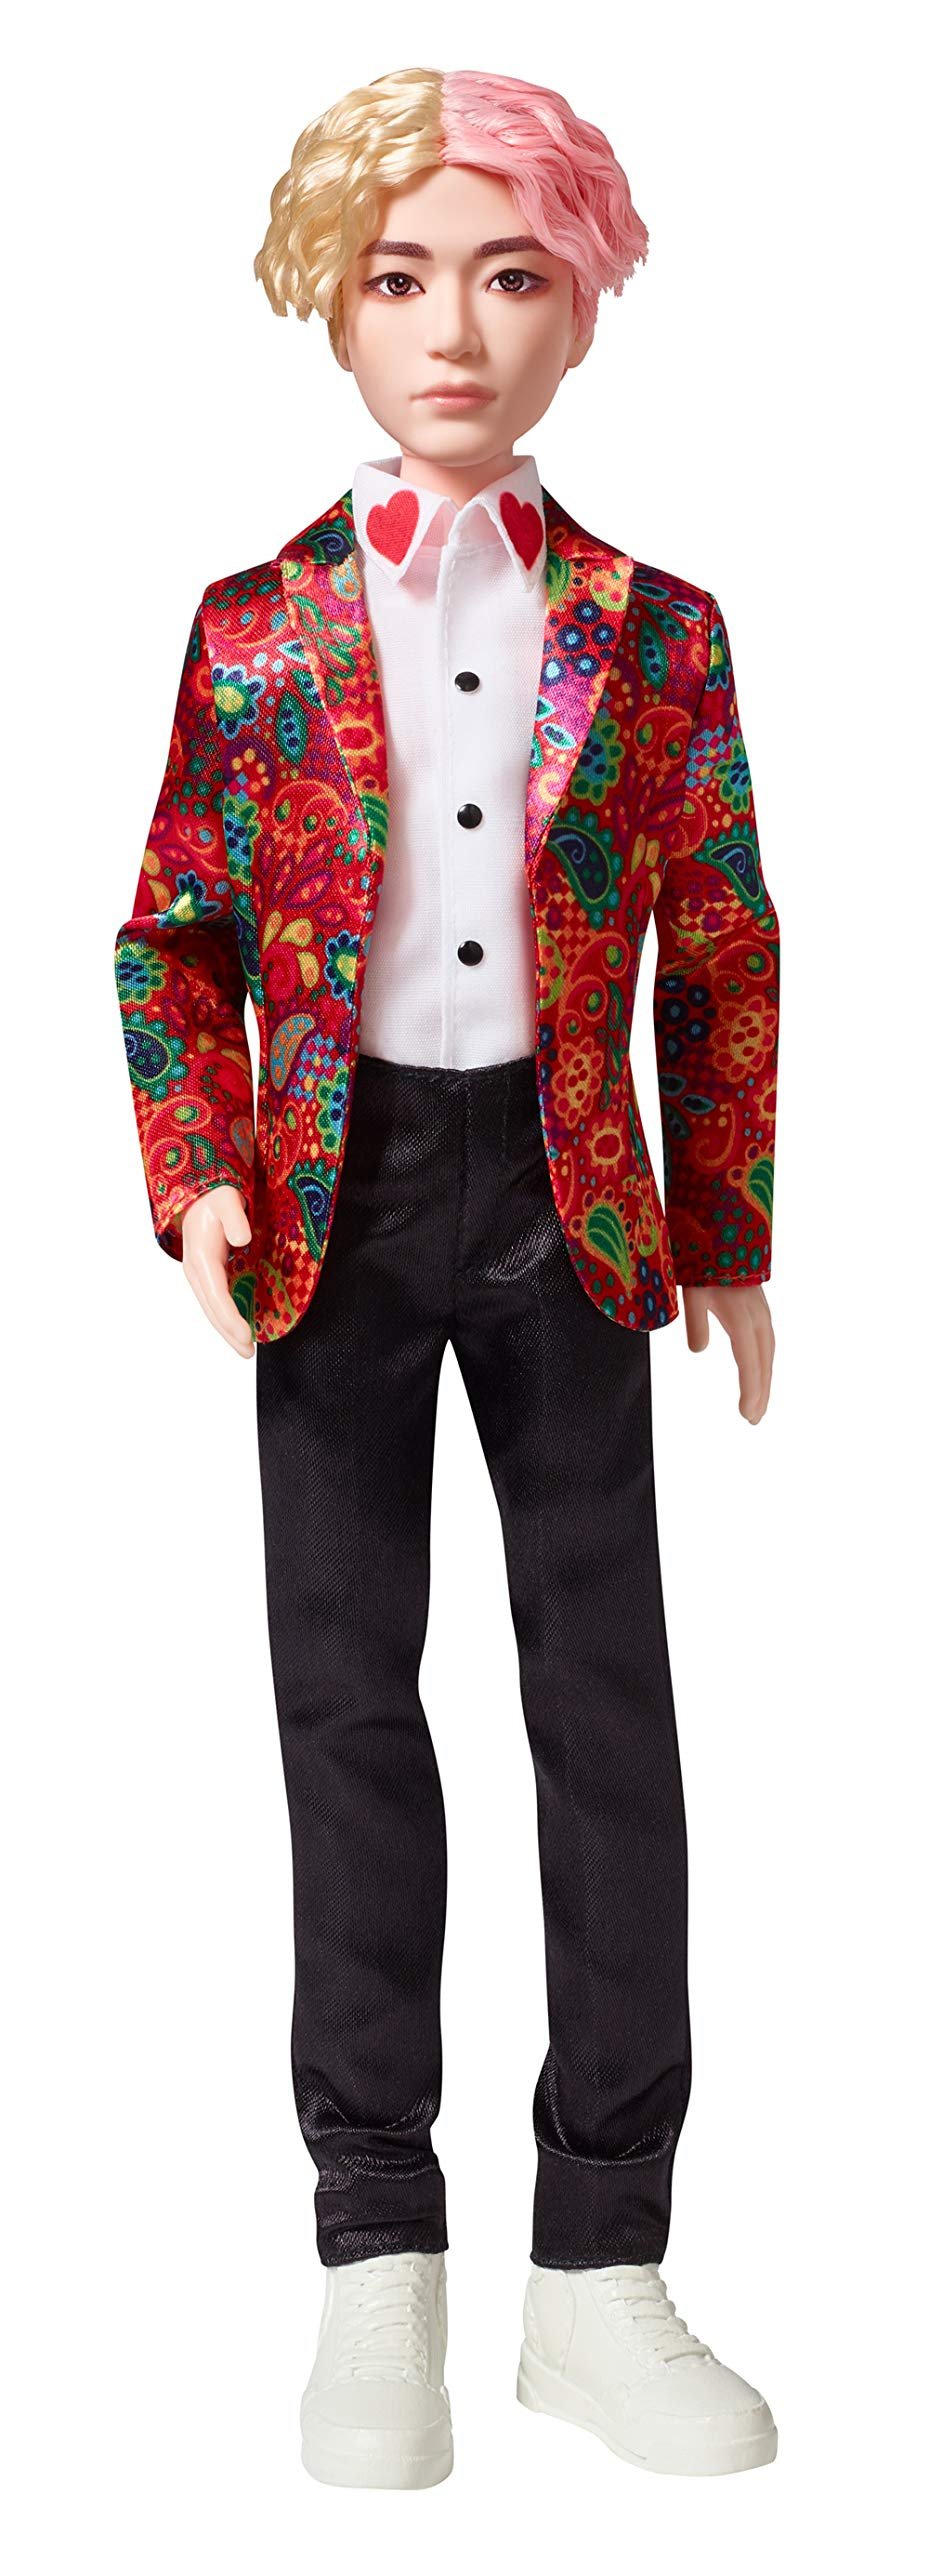 Mattel GKC89 BTS V Idol Fashion Doll for Collectors, K-Pop Toys Merchandise from 6 Years, 28 cm